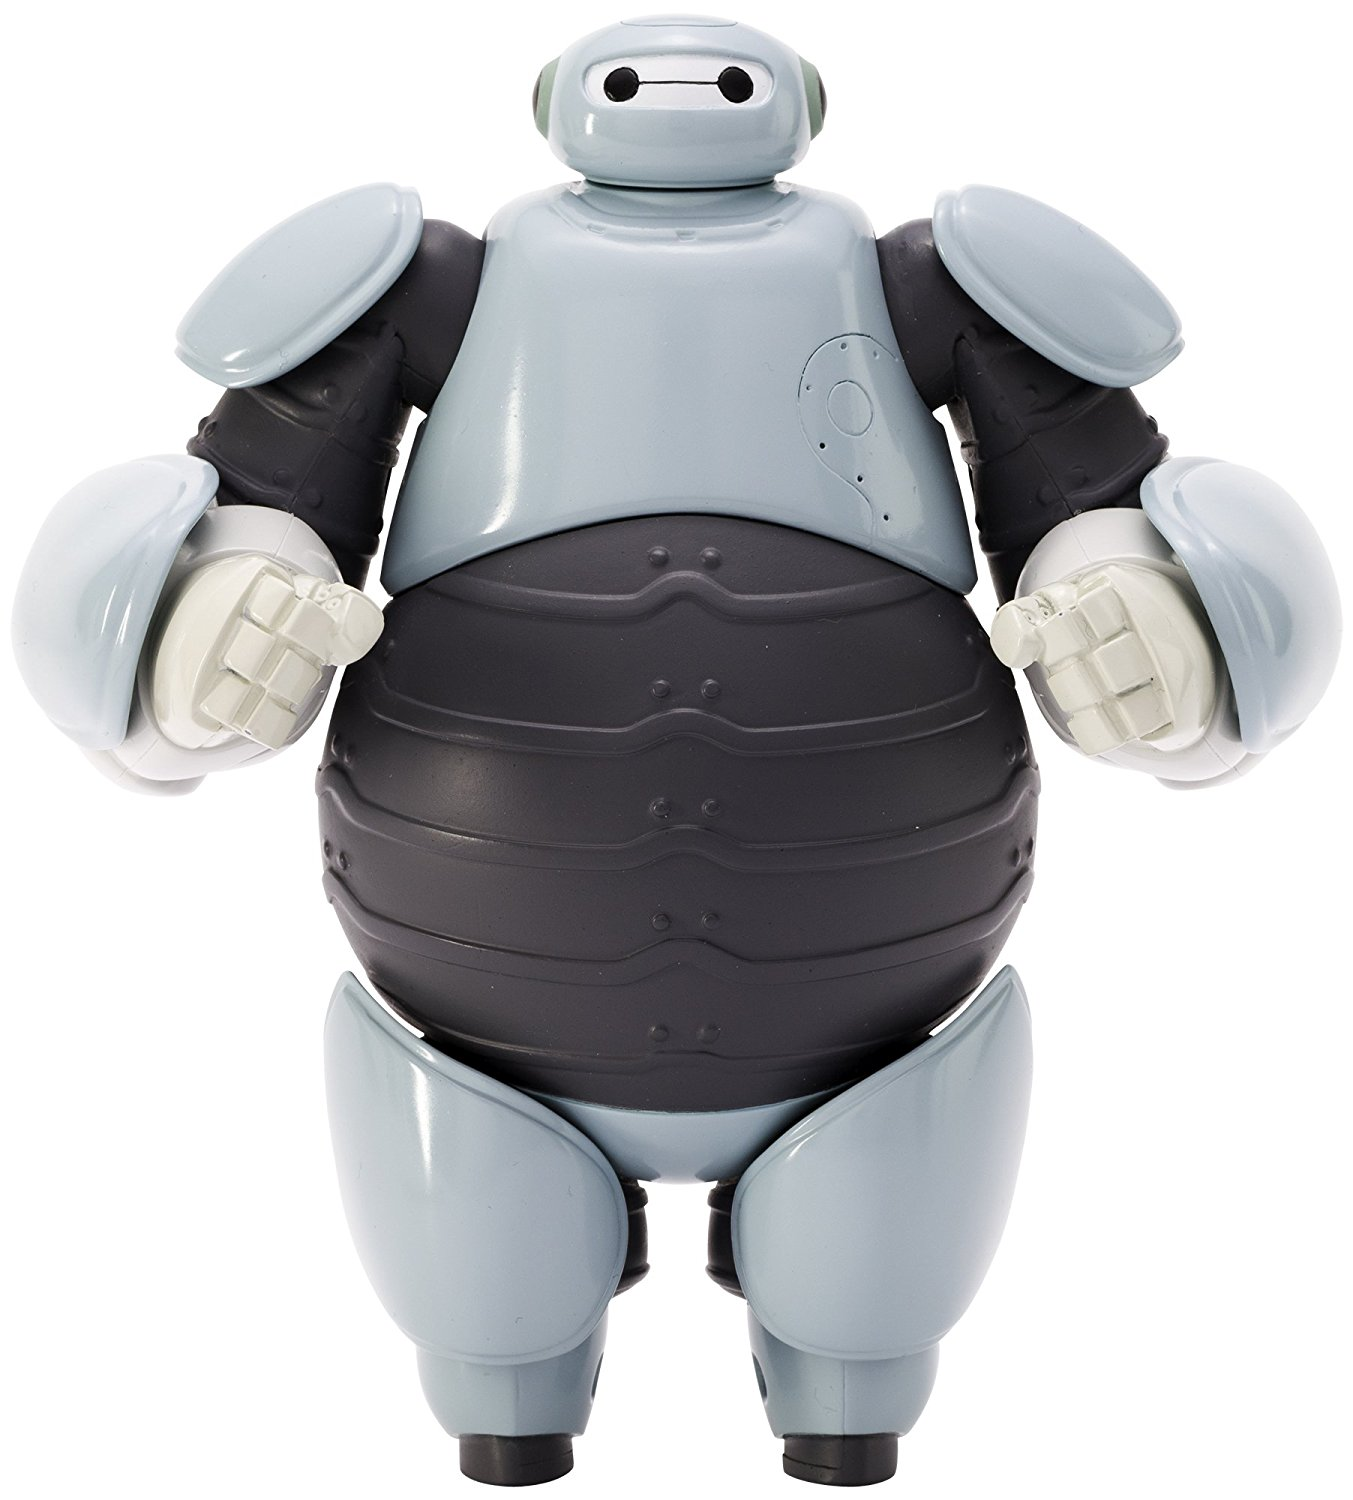 "Baymax 1.0 Action Figure, 6"", Big Hero 6 6-inch Baymax 1.0 action figure By Big Hero 6 Ship from US"